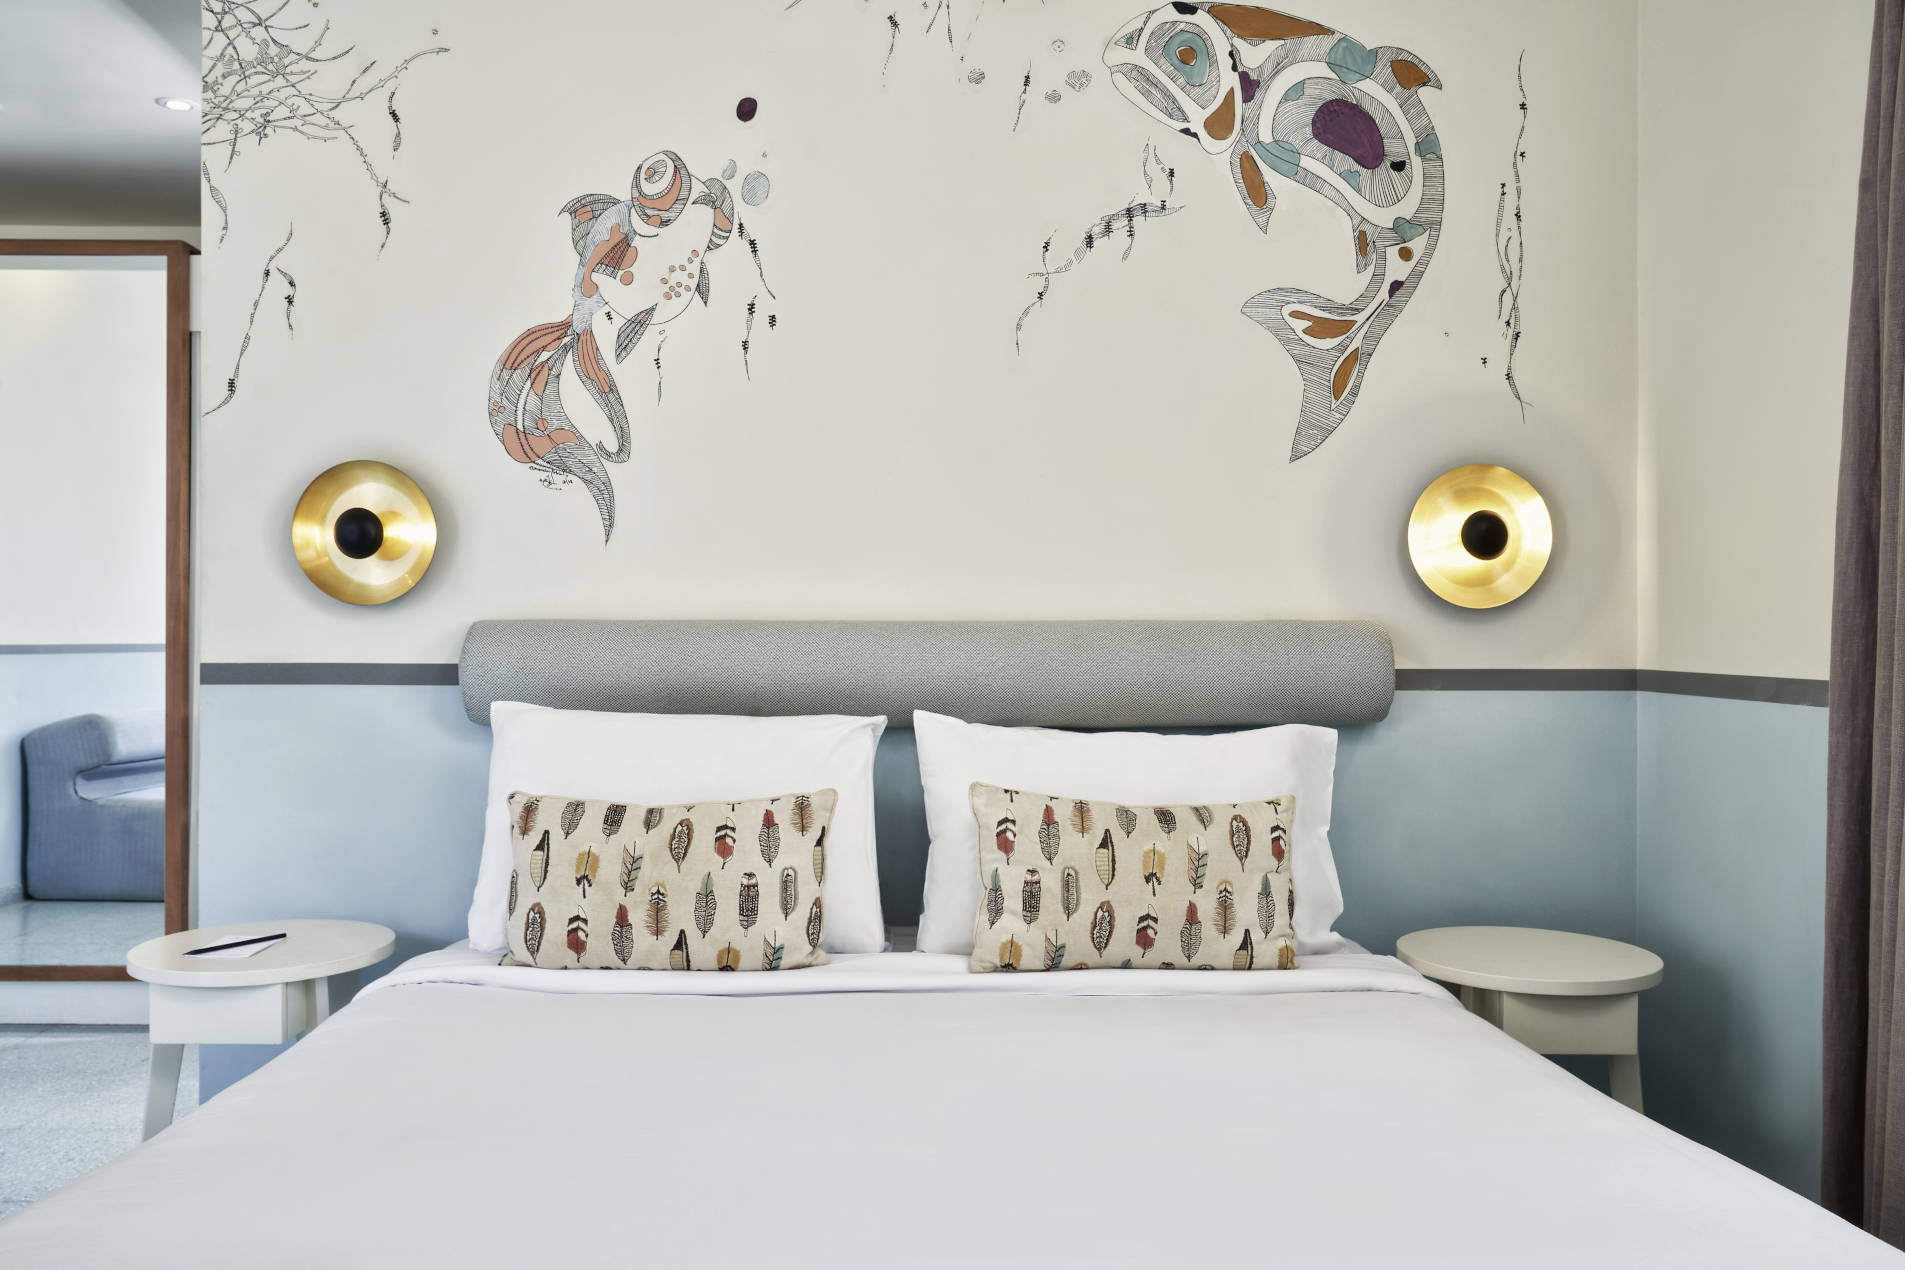 Water Theme Room in Turtle's Inn Hotel El Gouna Egypt with King size bed & two cushions with bohemian design feathers casing